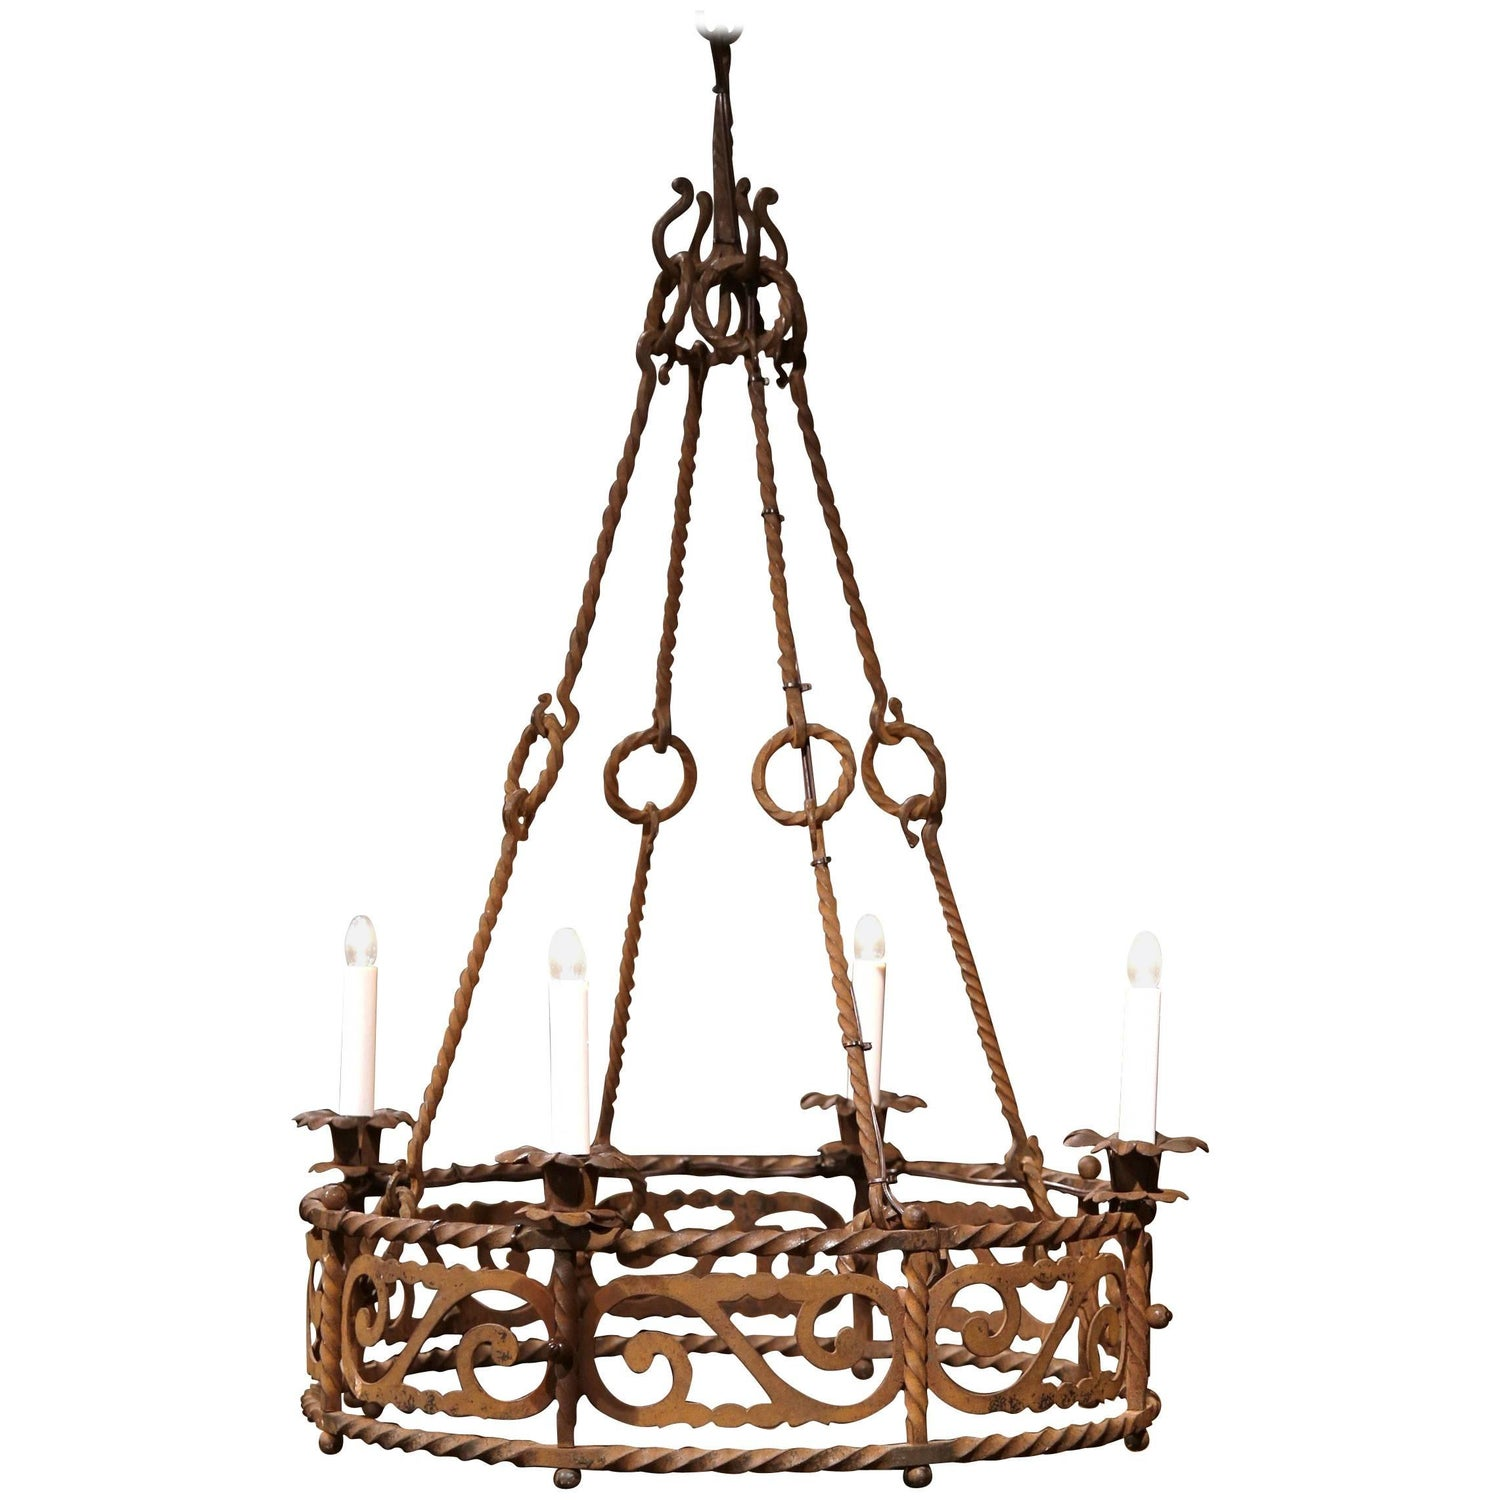 19th Century French Four Light Gothic Rusty Wrought Iron Round